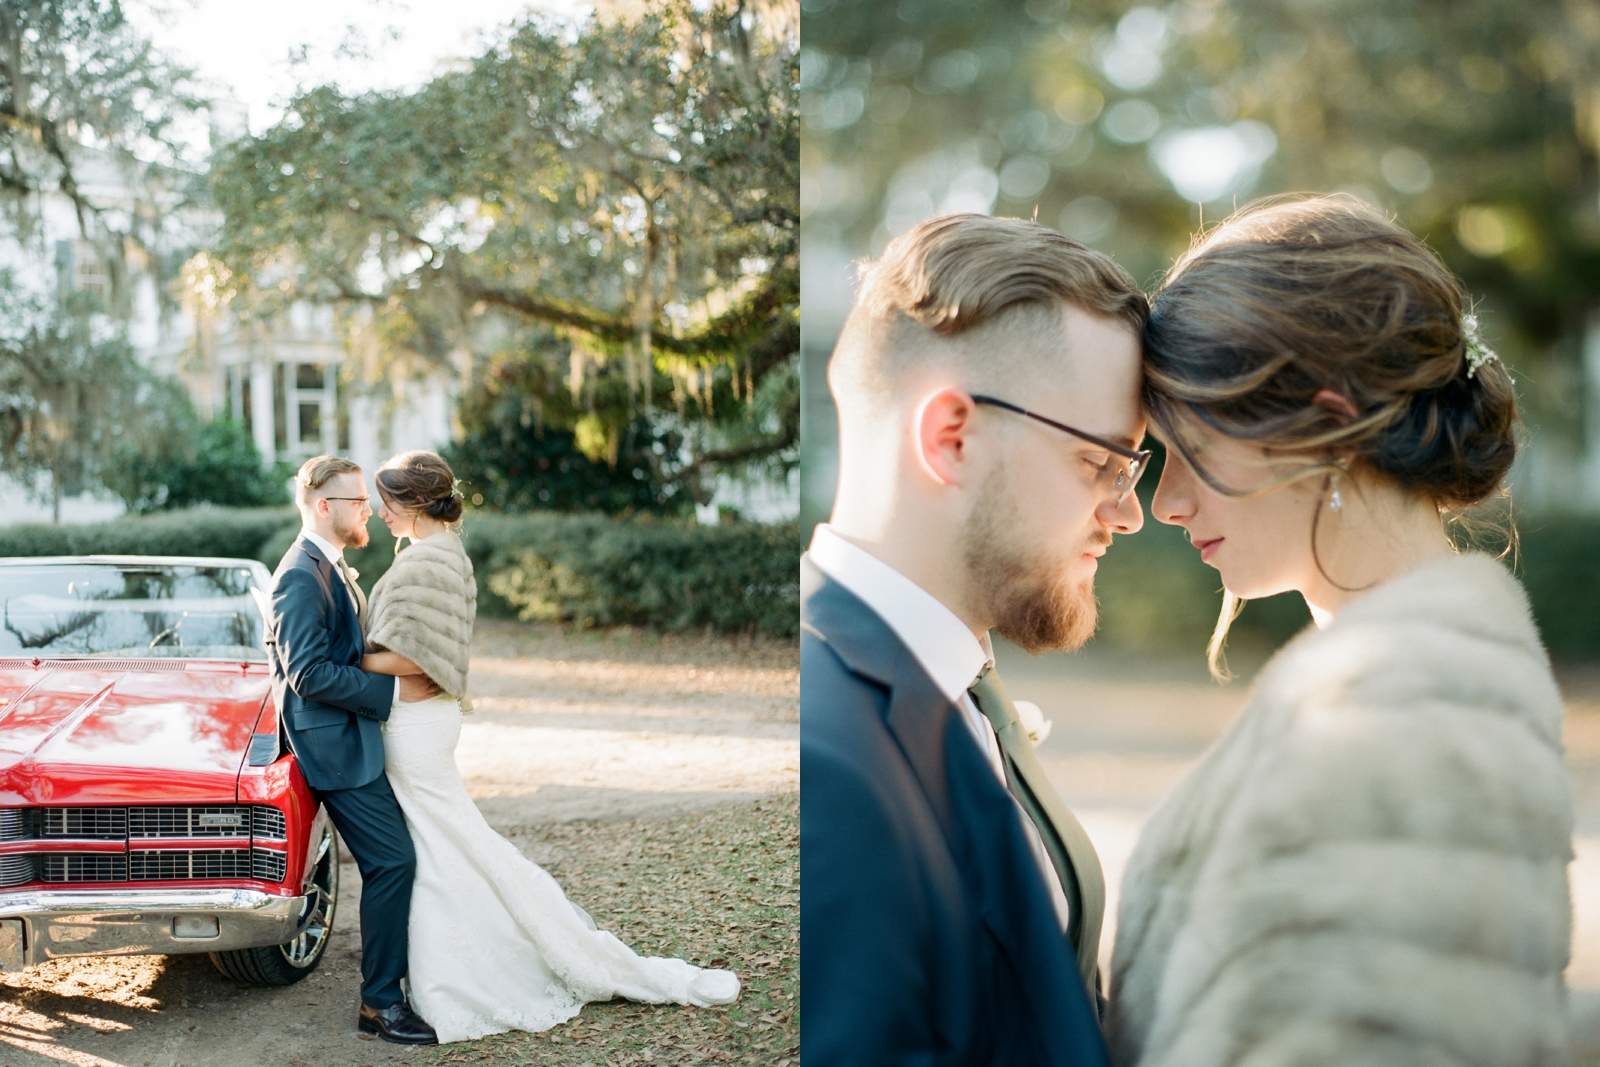 goodwood museum tallahassee wedding photographer - tallahassee florida - shannon griffin_0023.jpg